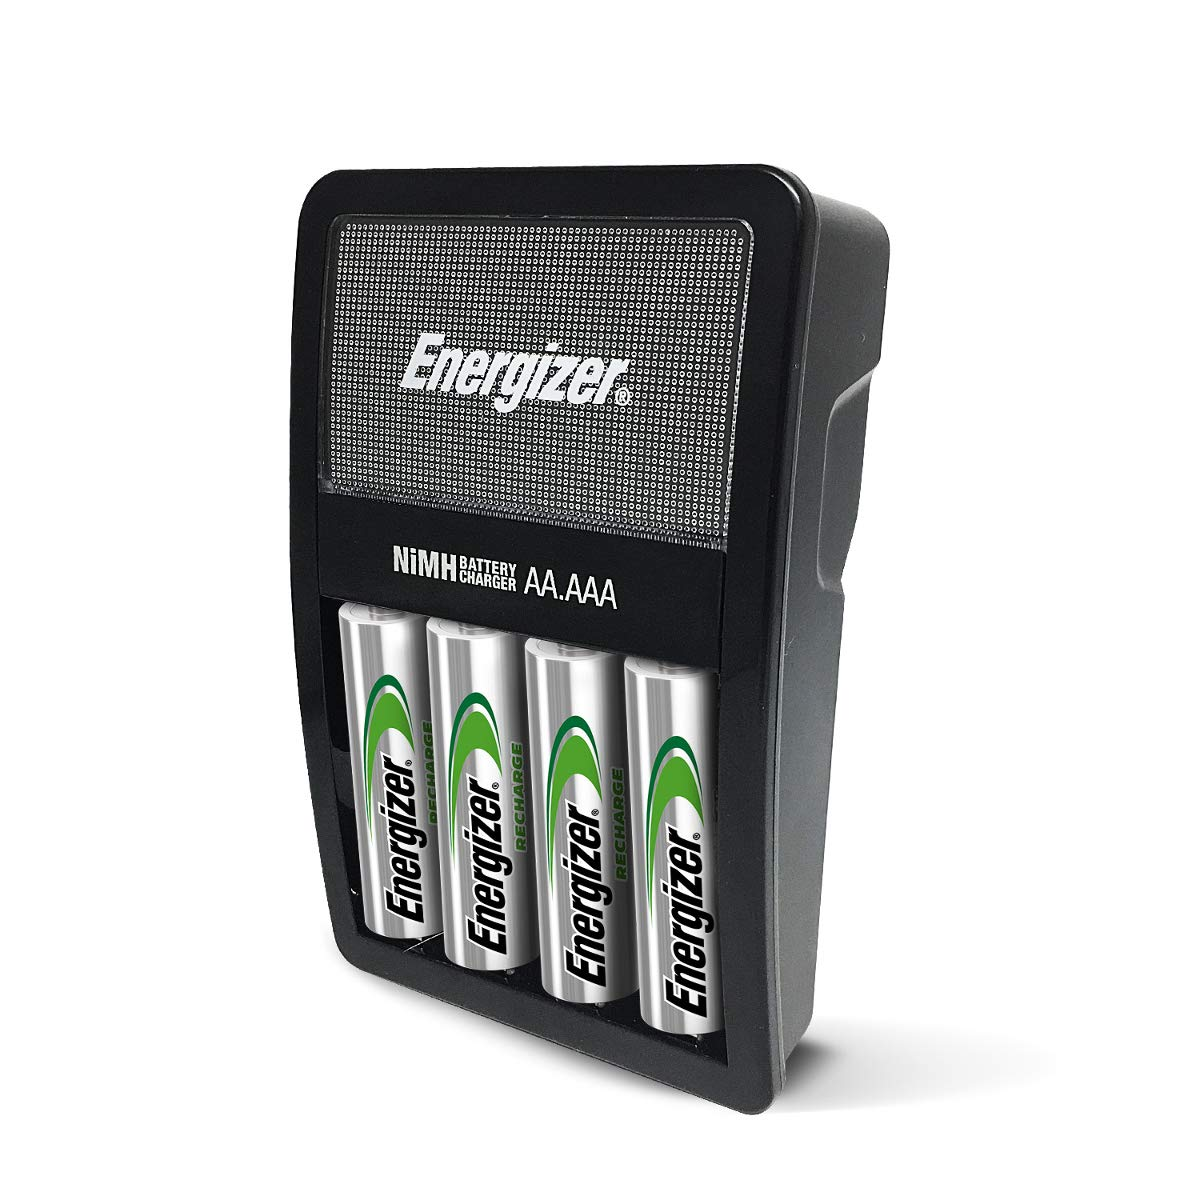 Recharge Value Energizer Battery Charger